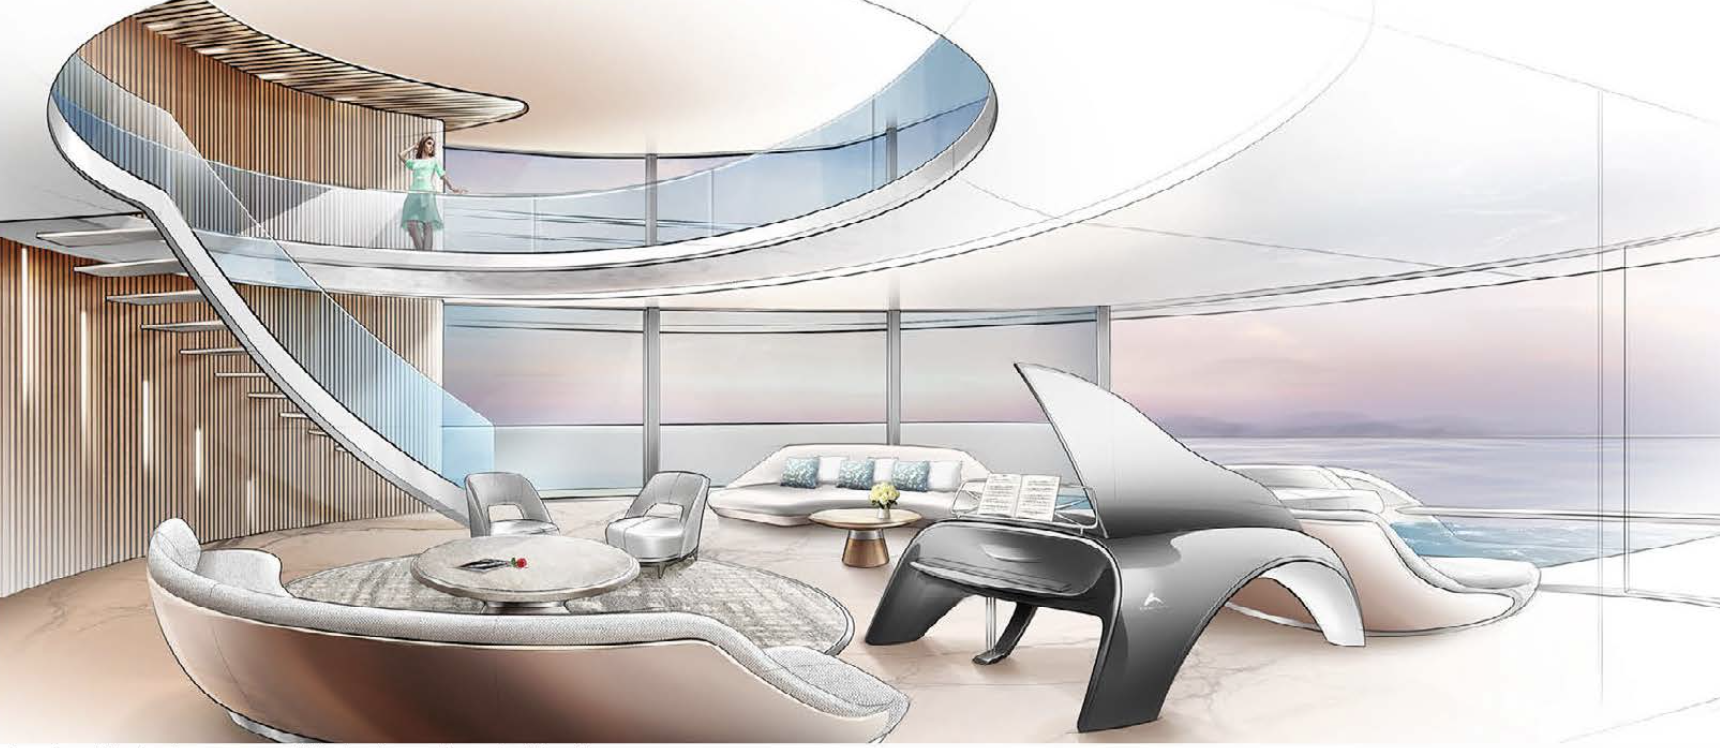 SILK ROAD YACHTS Interior Design Concept